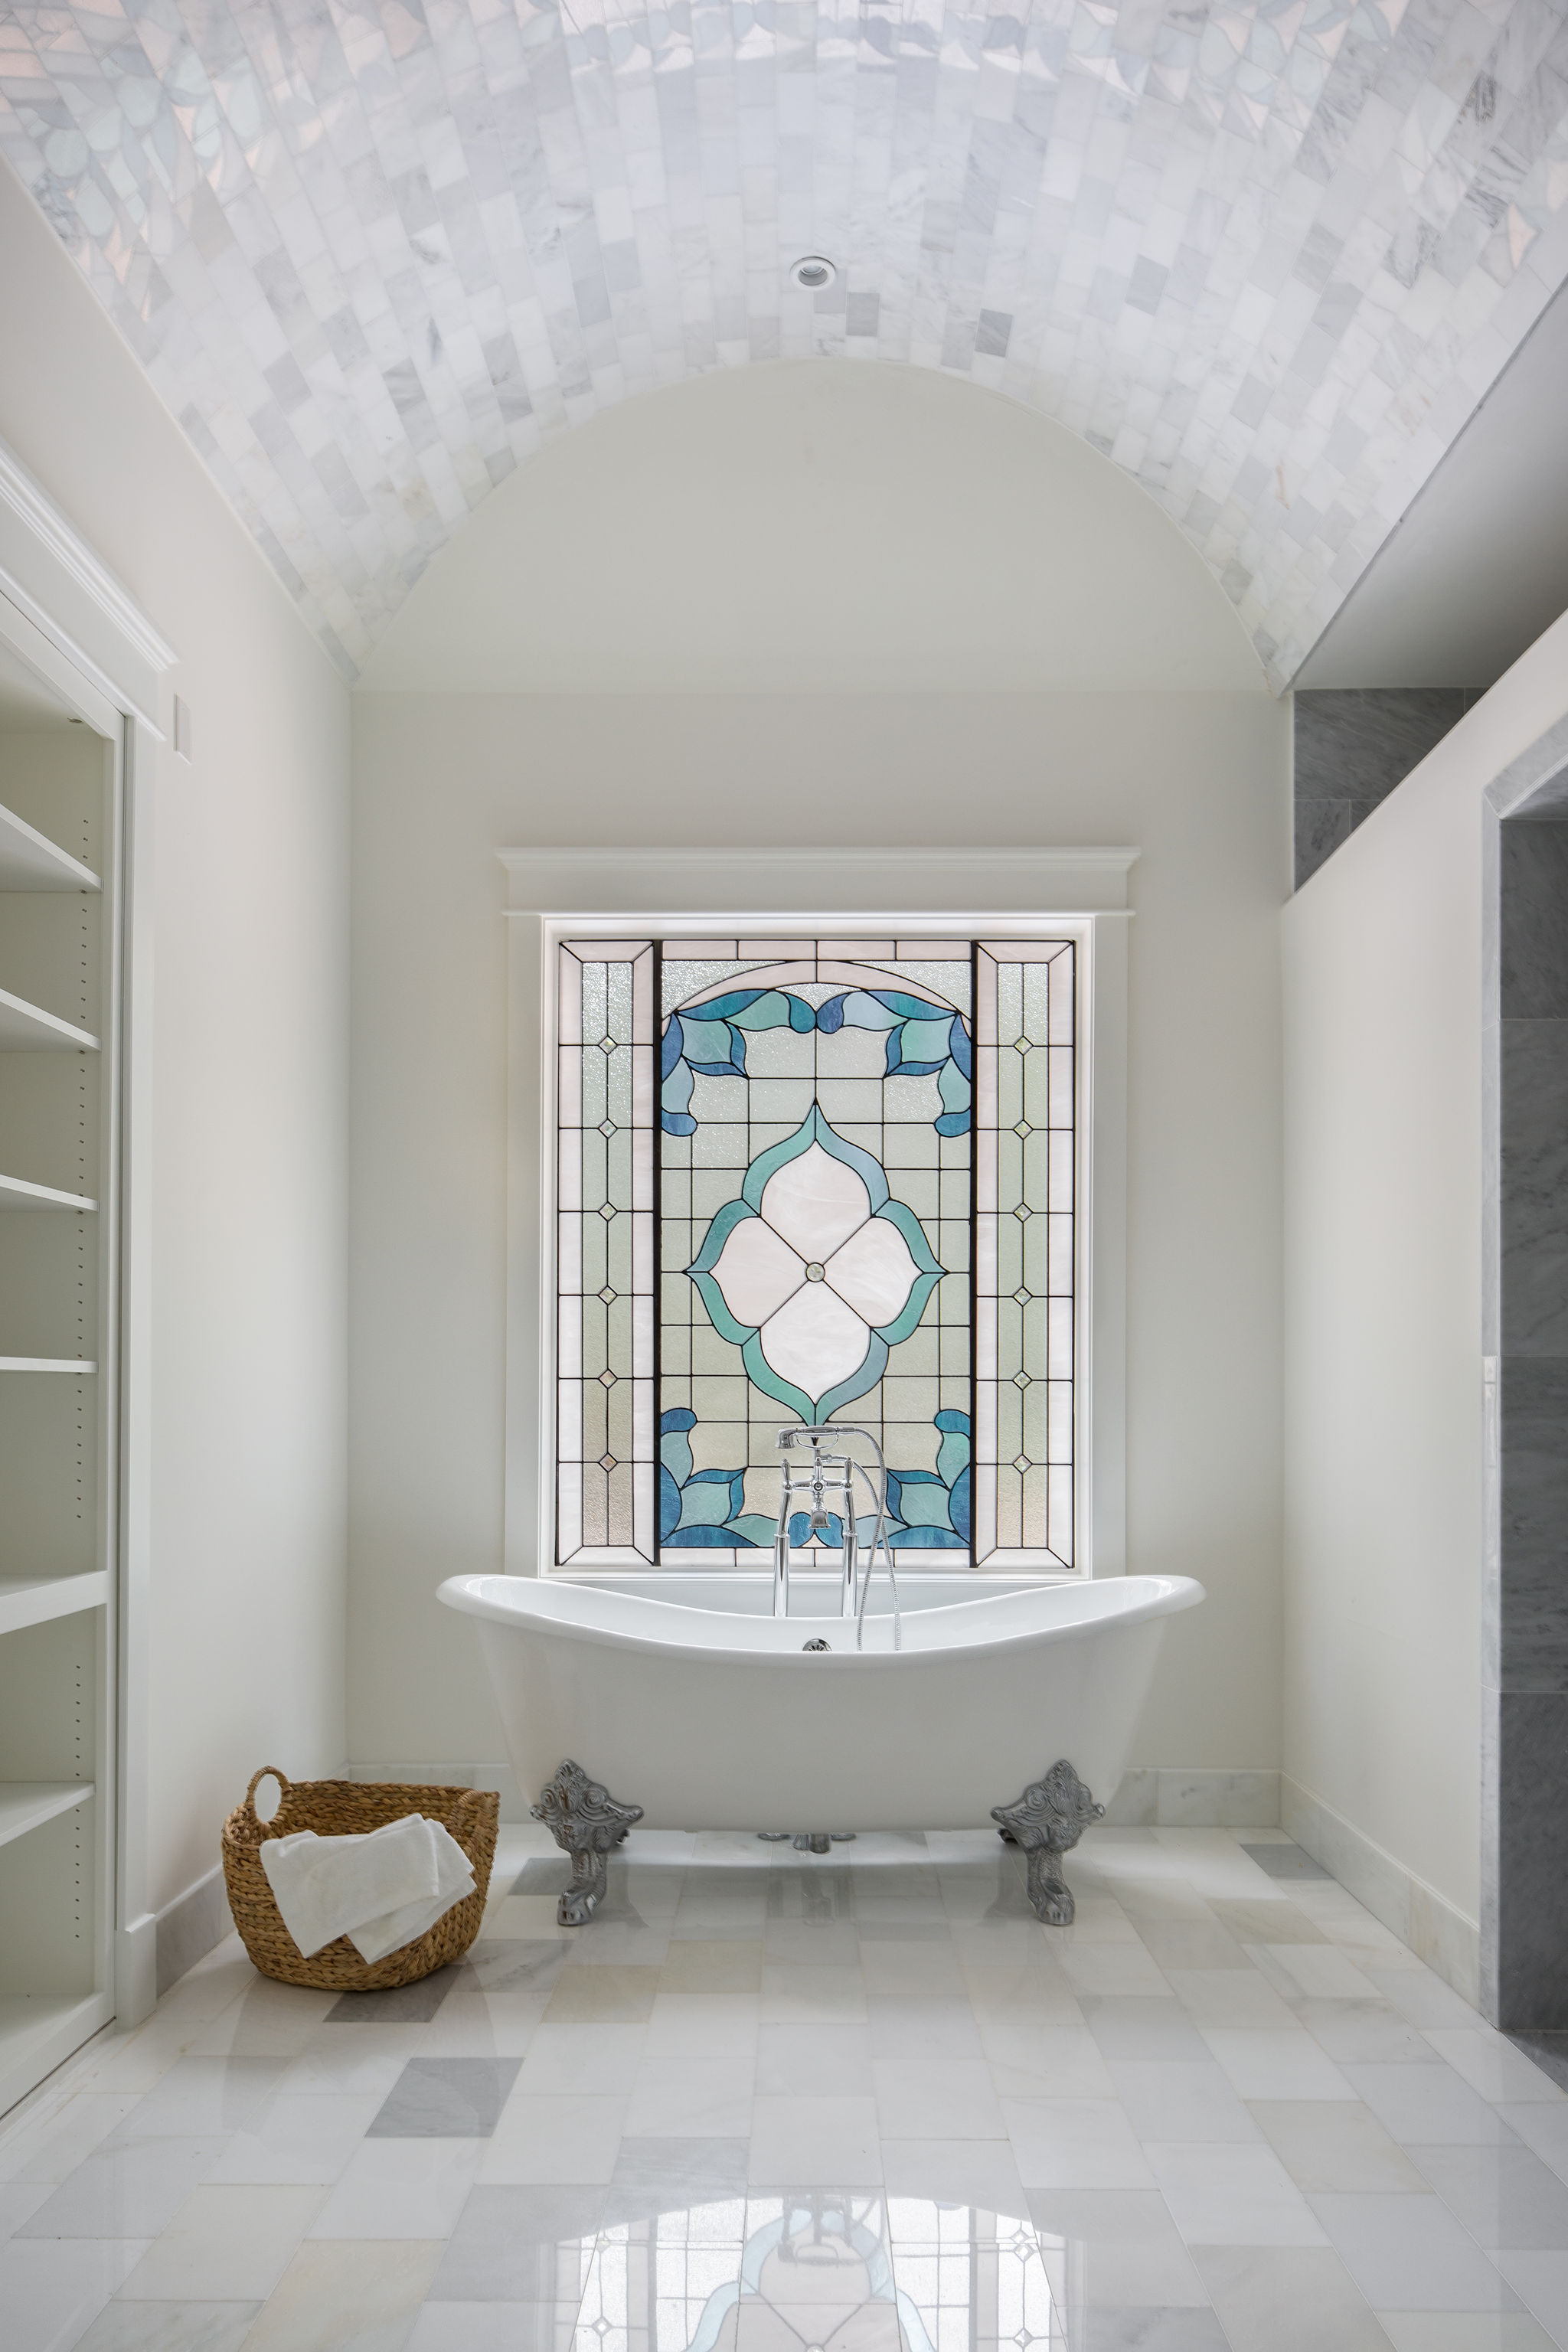 CONSULTATION ONLY - If you simply need a designer to come to your home for one hour to pick their brain, we can do that!